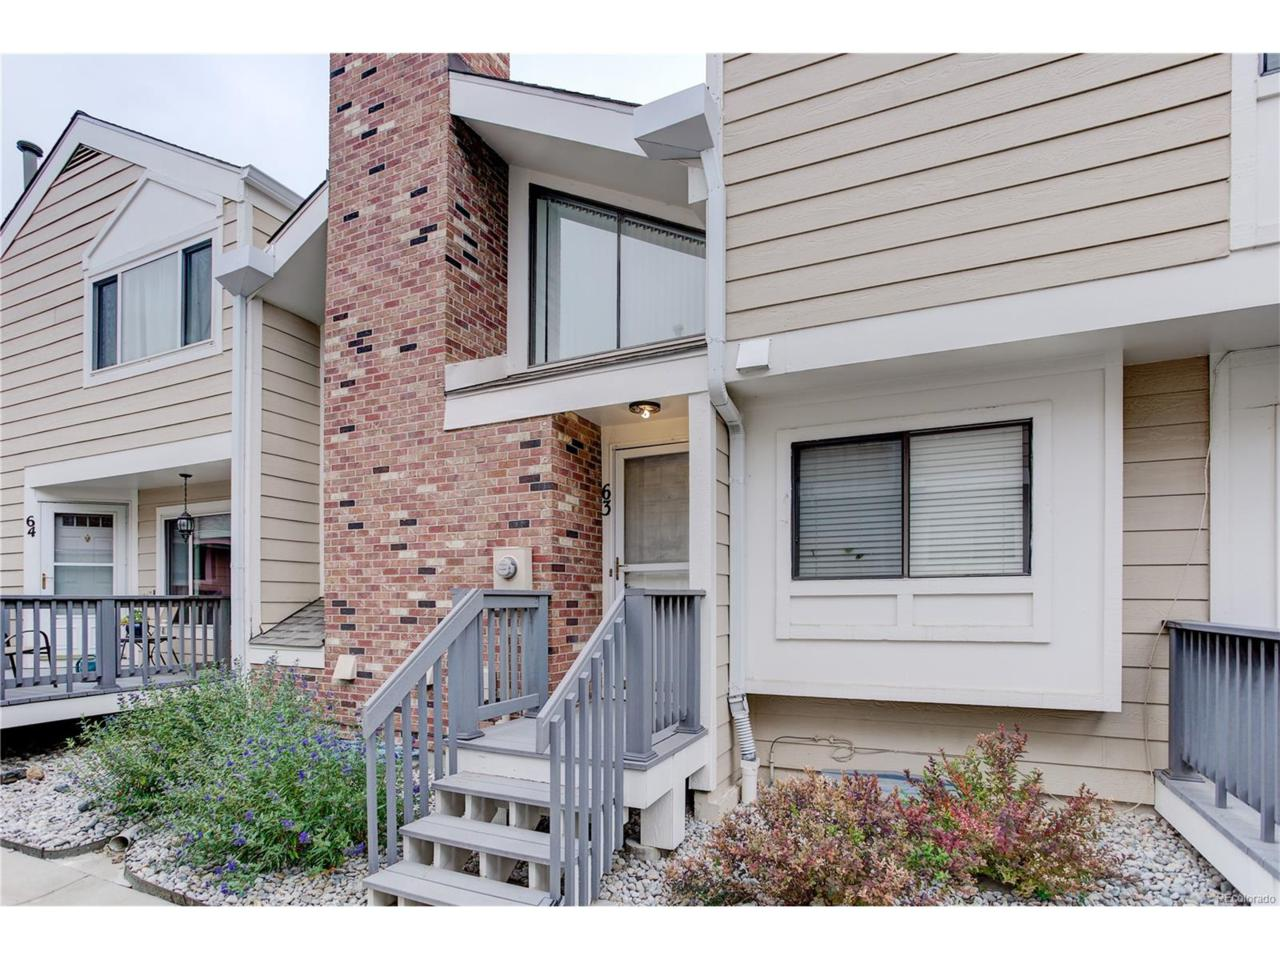 6725 W 84th Way #63, Arvada, CO 80003 (MLS #1528794) :: 8z Real Estate